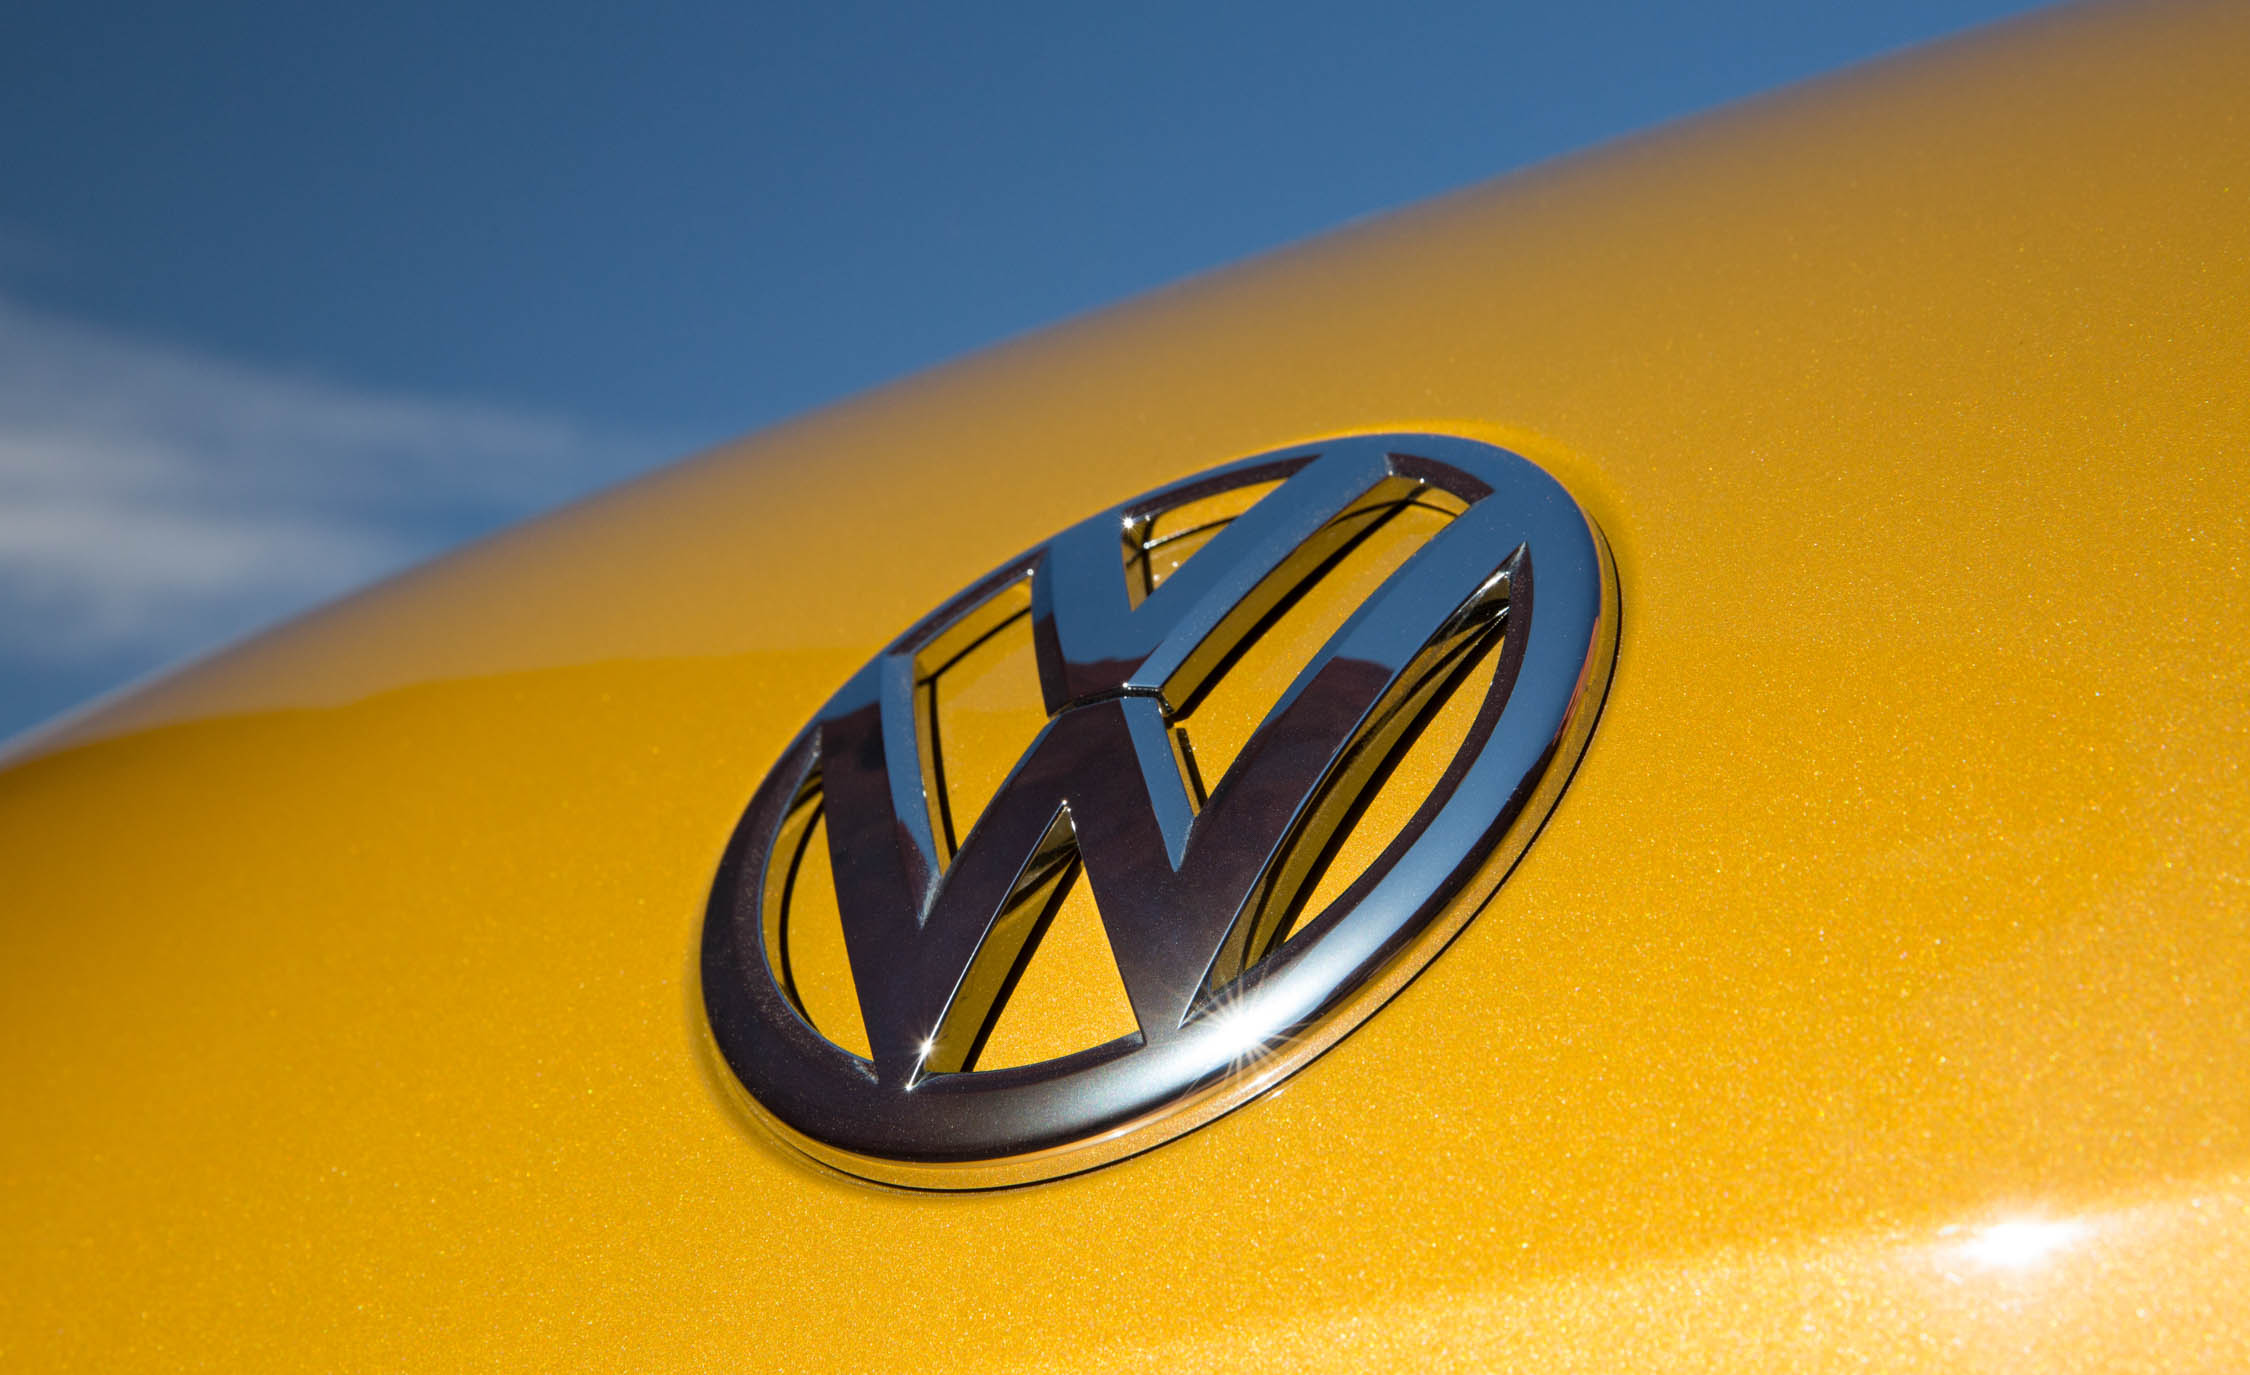 2016 Volkswagen Beetle Dune Exterior Badge Front (Photo 17 of 32)